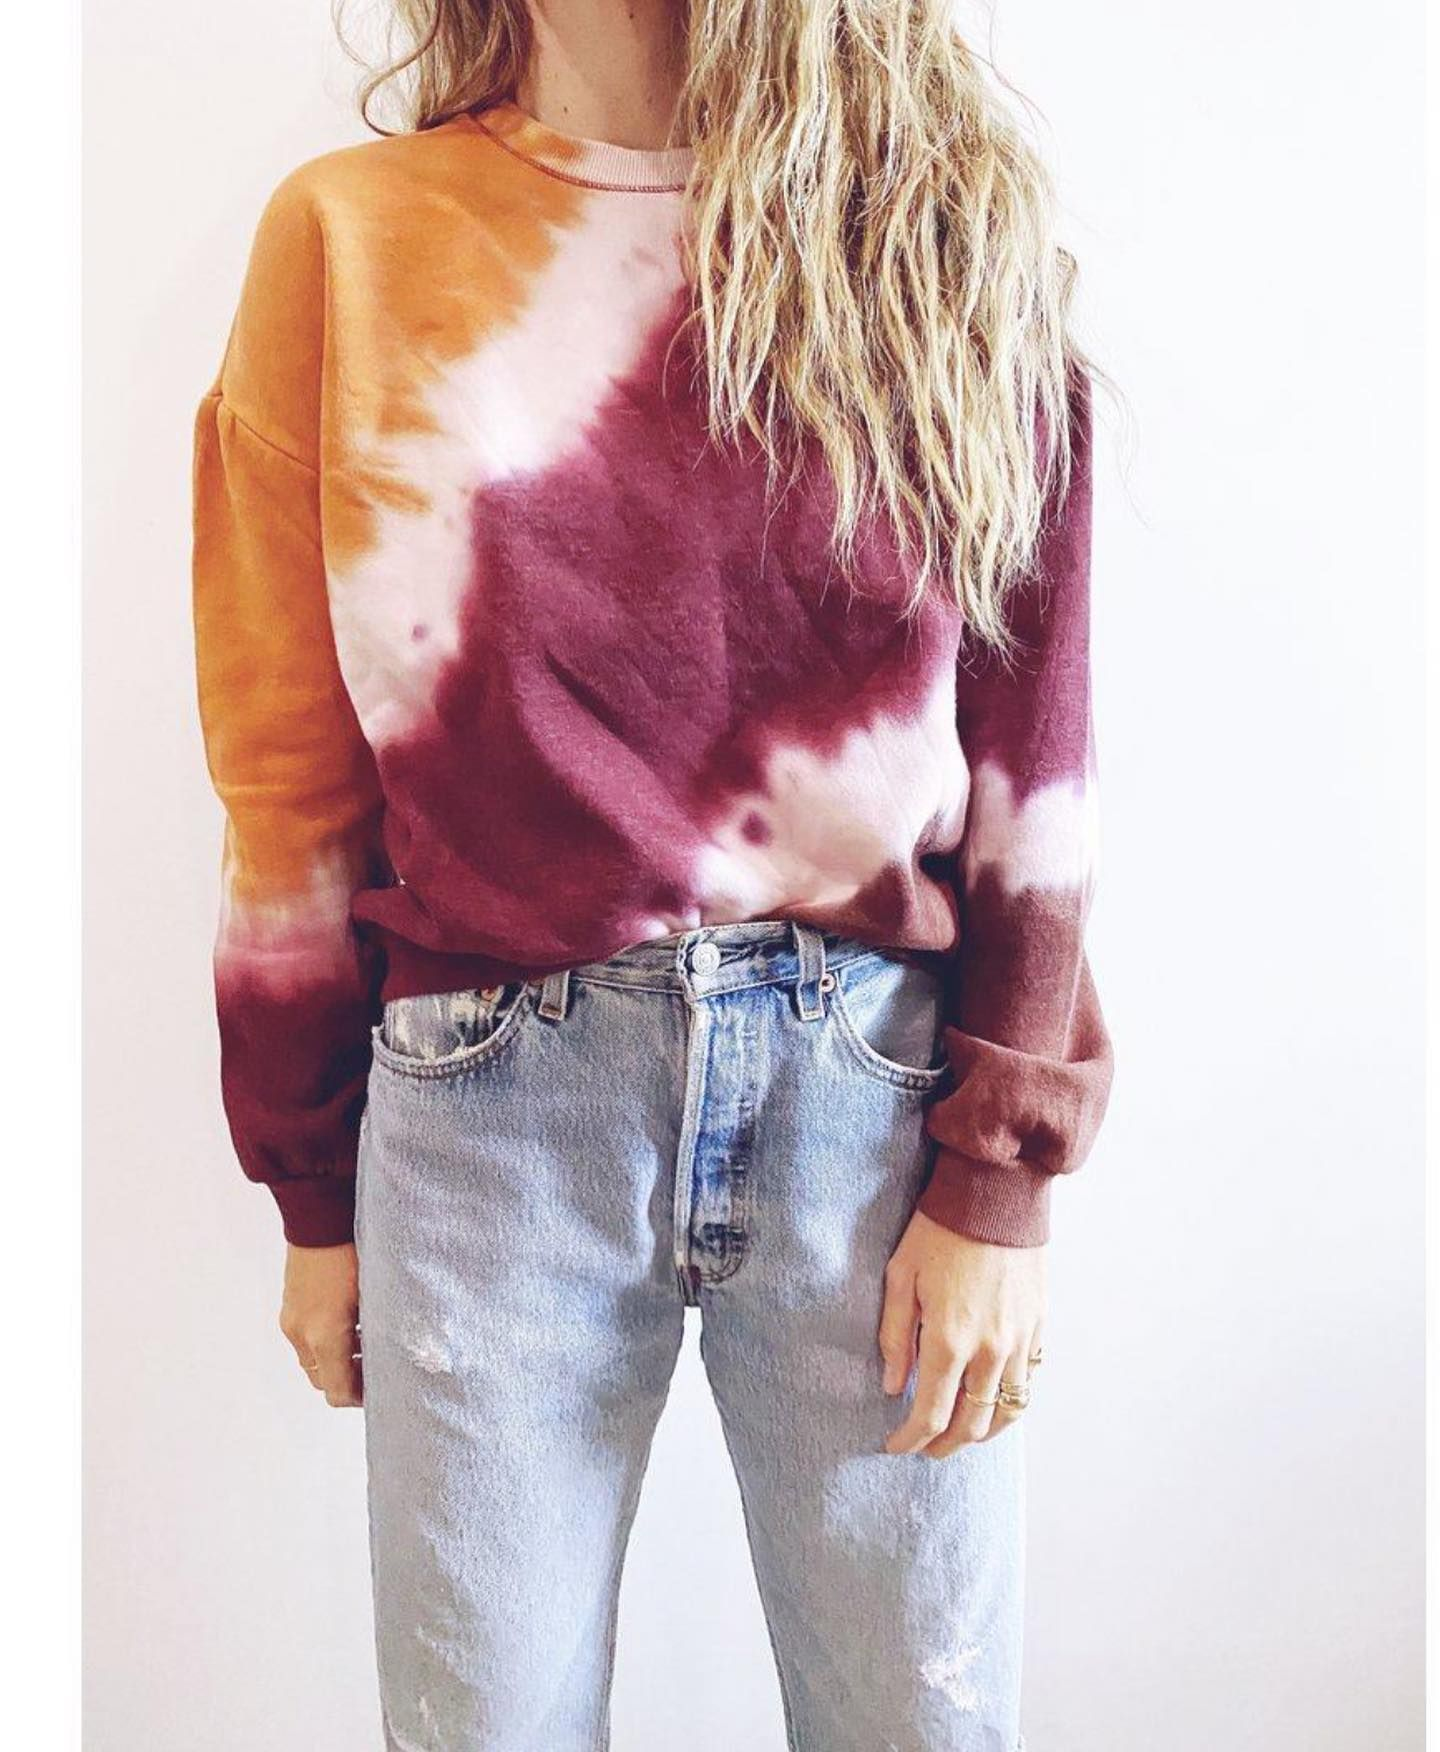 Restocked Sunrise Tie Dye Pullover Is Back In Every Size Size Up If You Want A Looser Fit 32 Shopsmall Ascotandhart Tie Dye Tie Dye Hoodie Lounge Wear [ 1752 x 1440 Pixel ]